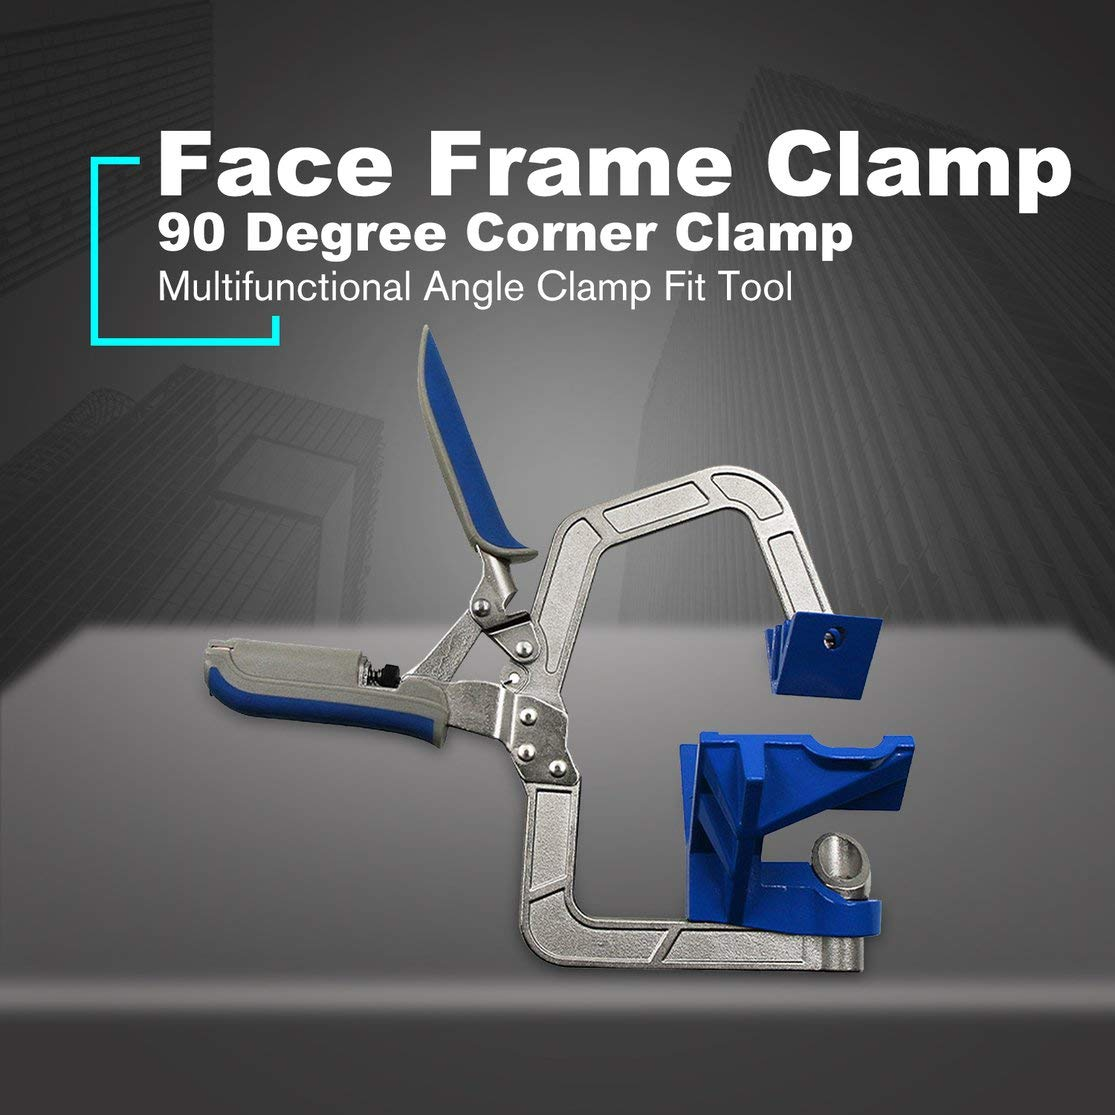 Multifunctional Auto-adjustable 90 Degree Corner Face Frame Clamp Woodworking Right Angle Clip Fit Fix Tool Blue Kaemma